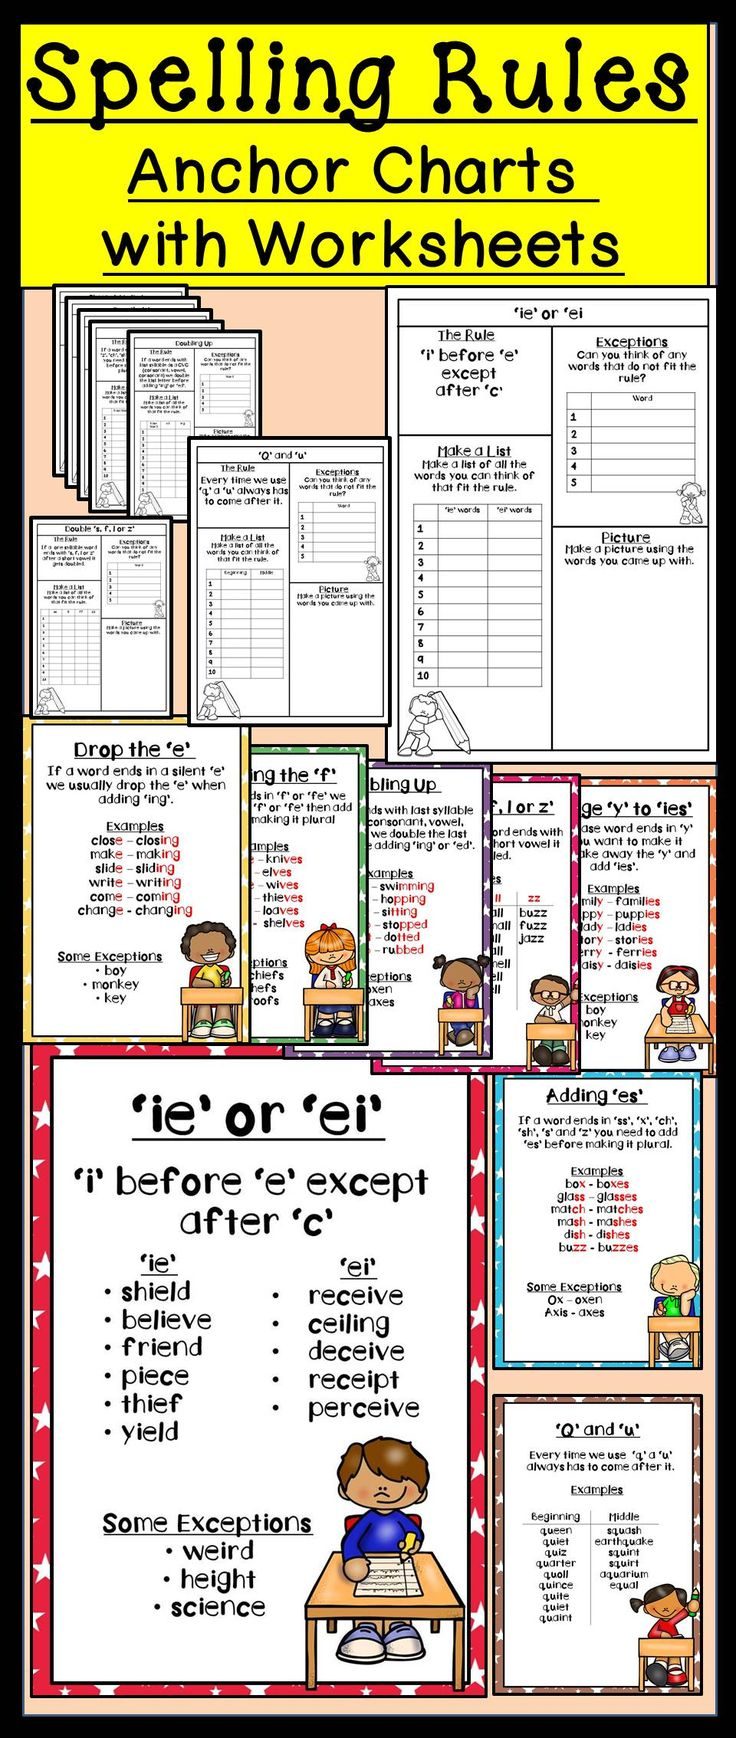 Workbooks plural rules worksheets : The 25+ best Spelling rules ideas on Pinterest | Phonics rules ...